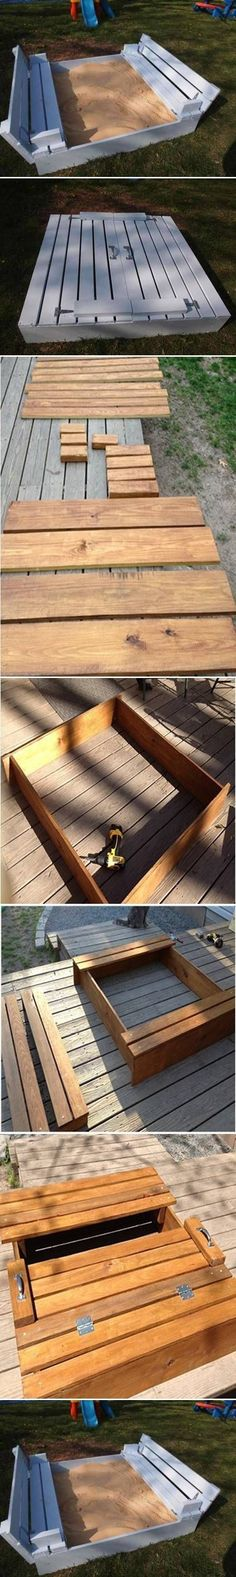 Building a cool sand box with a bench